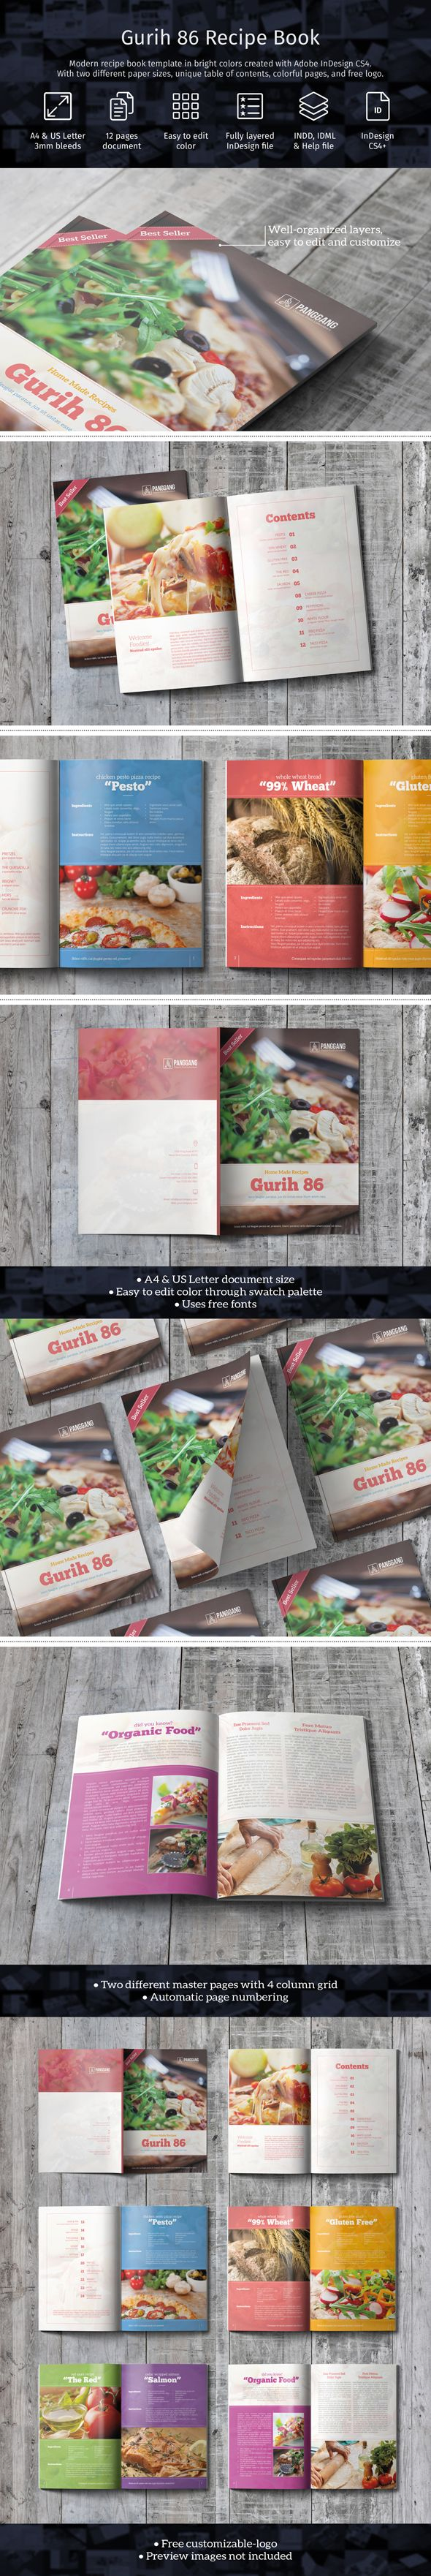 Color book in design - Modern Cookbook Template In Bright Colors Created With Adobe Indesign And Photoshop Cc This Essentials Template Comes With Character Paragraph Styles